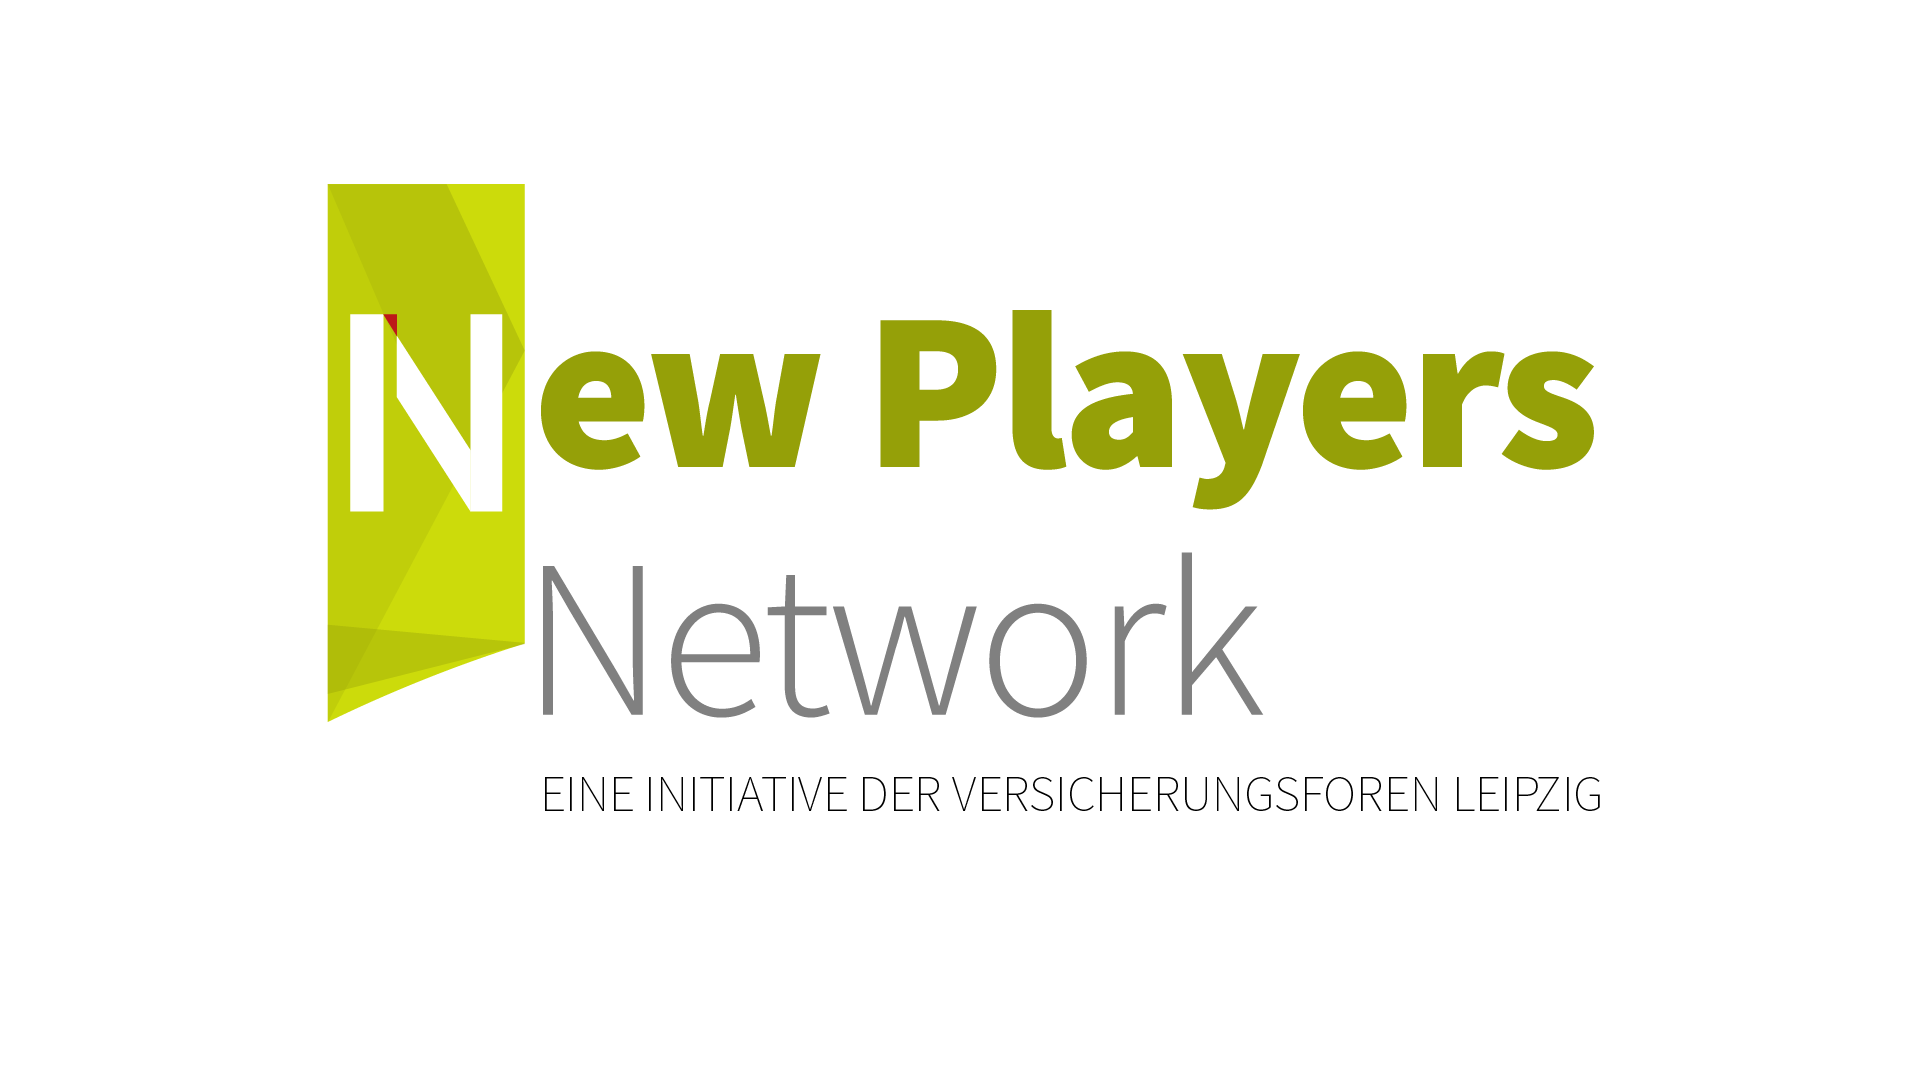 New Players Network_3-03